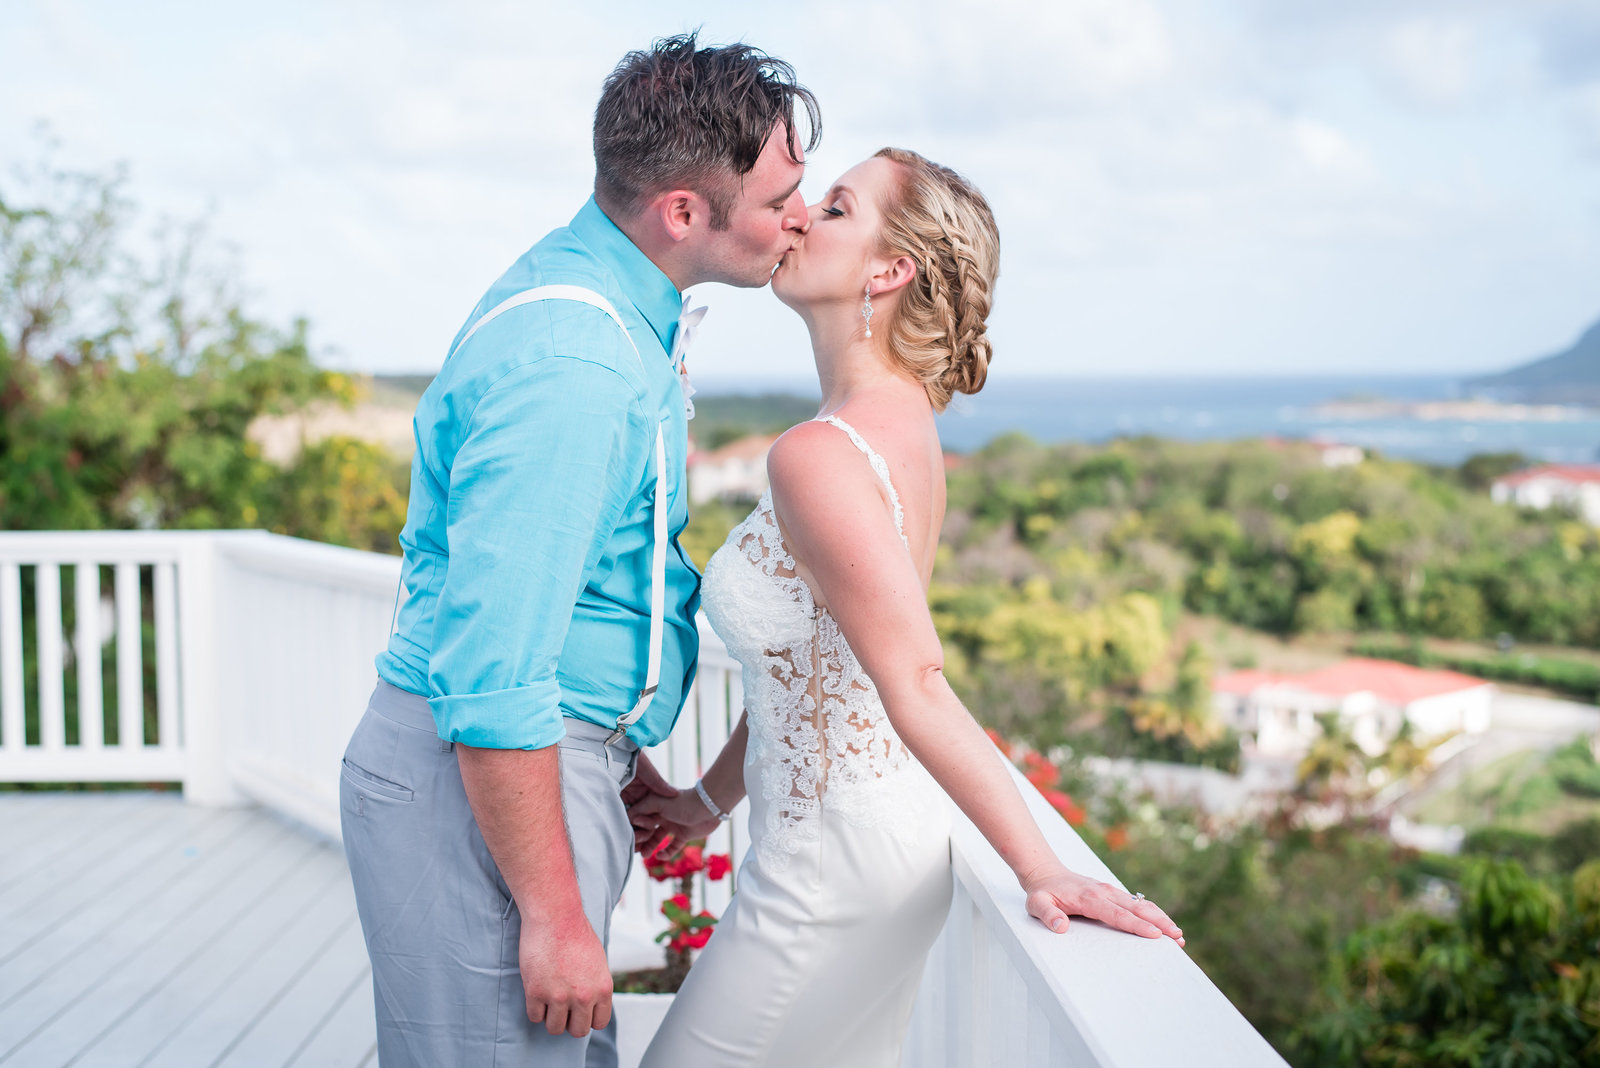 Emily-and-Chris-St-Lucia-Wedding-Melissa-Desjardins-Photography-8